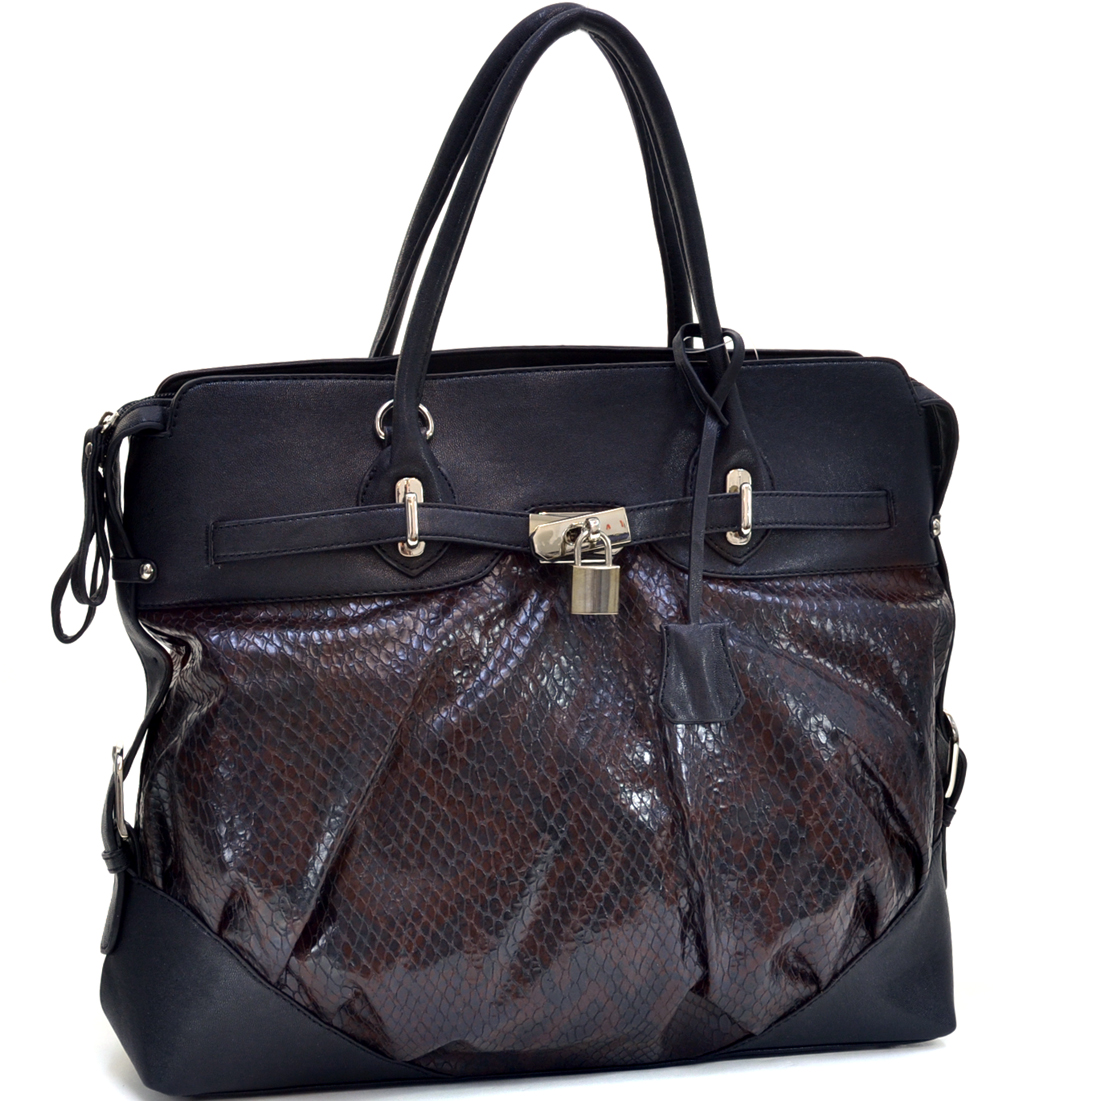 Two-Tone Lock Accent Front Python Embossed Shoulder Handbag